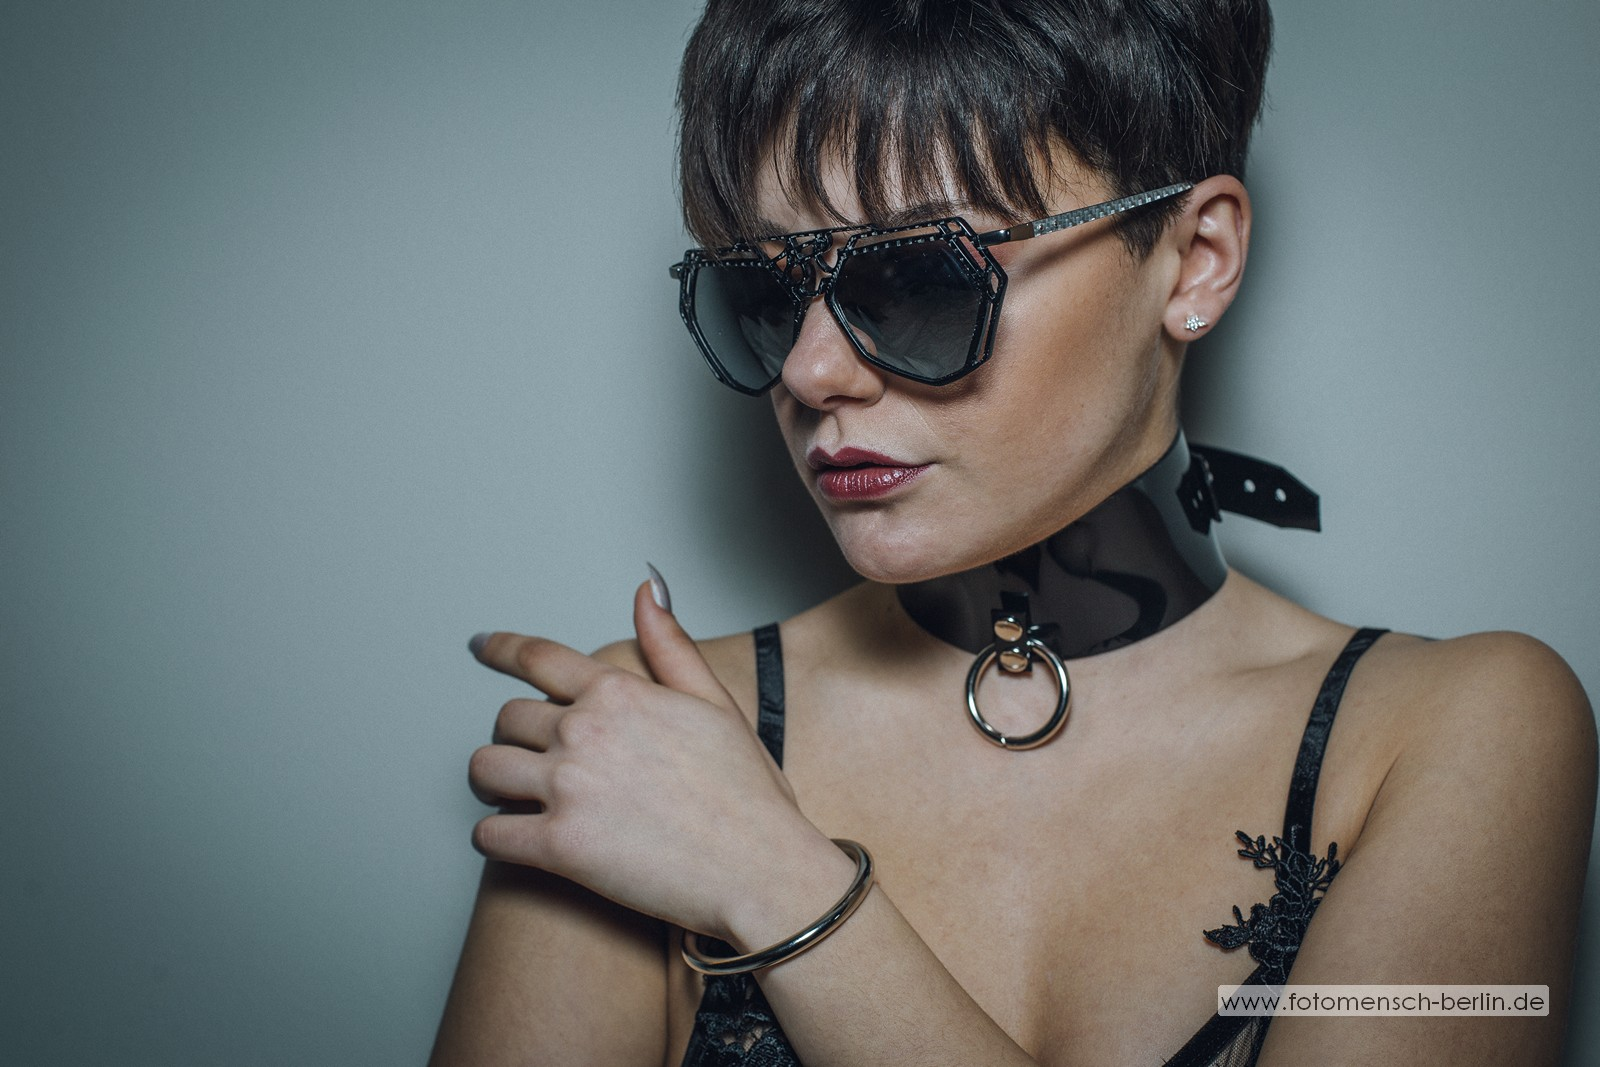 Tiziana for jeweleyesopen Eyewear 3